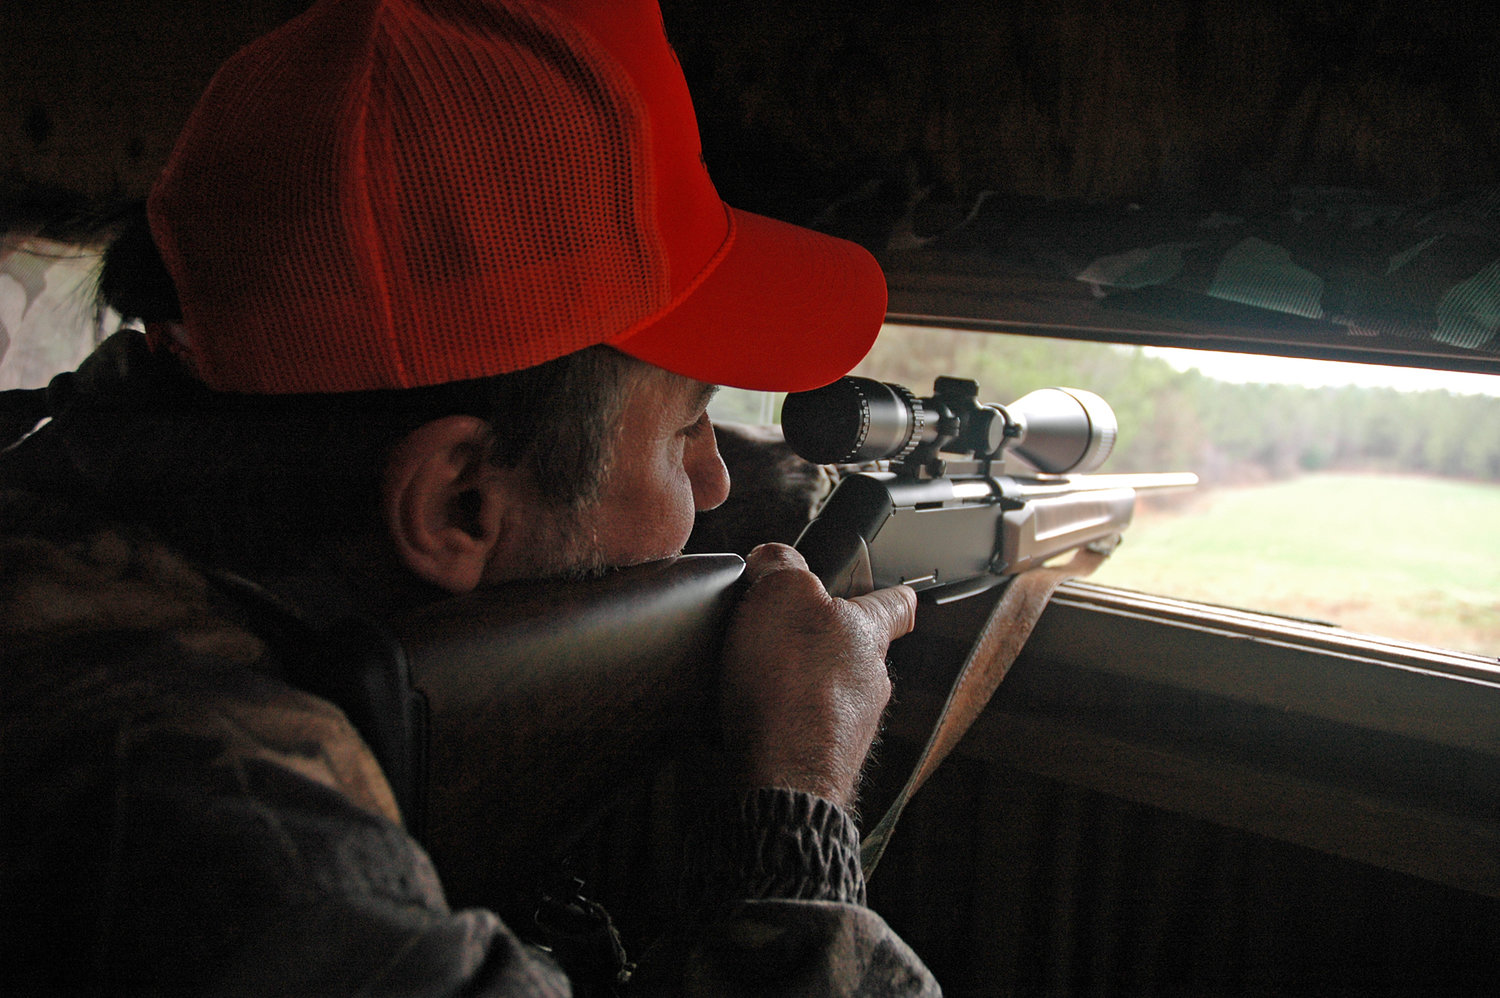 Hunters should always properly identify their targets and what is beyond before they put their finger on the trigger.